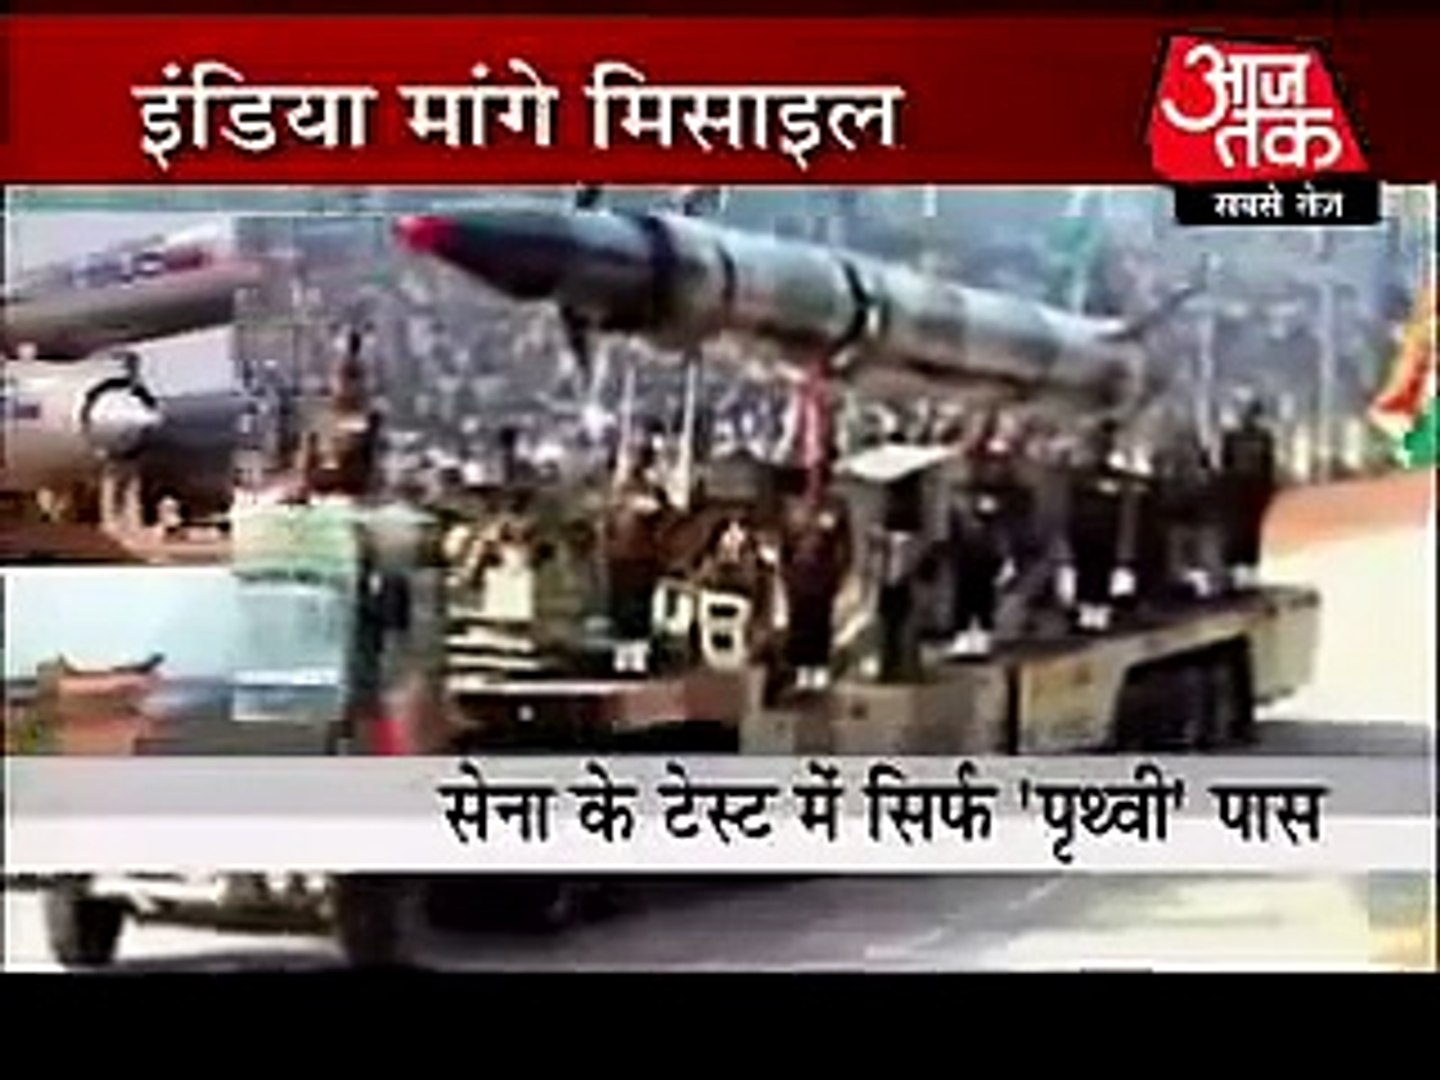 Indian News Channel Report-- Pakistan is power full then India -India News Channel Proved